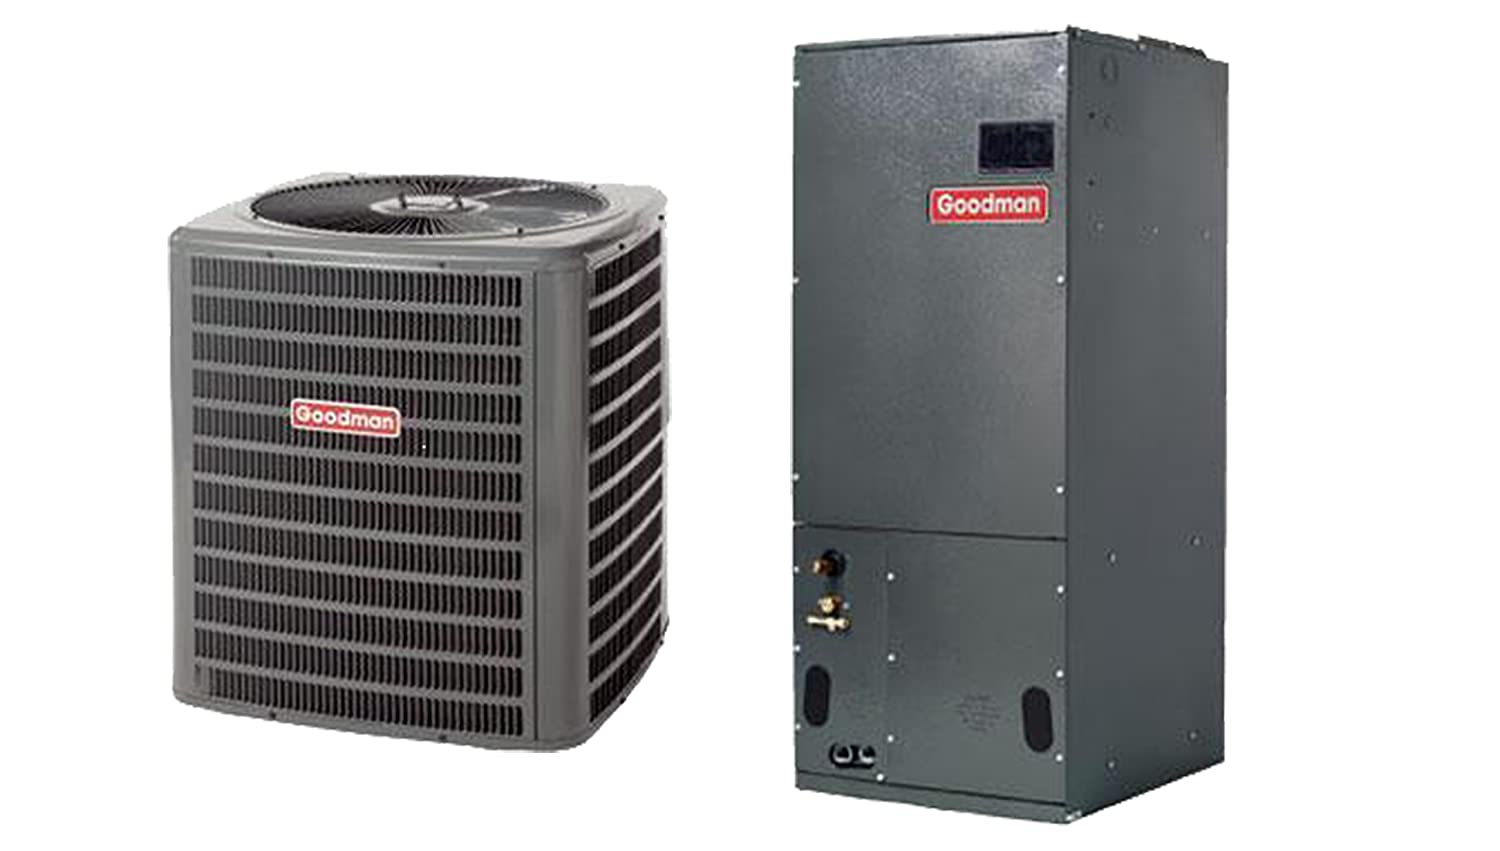 goodman ac unit. amazon.com: 5 ton 16 seer goodman air conditioning system - gsx160601 avptc60d14: home \u0026 kitchen ac unit